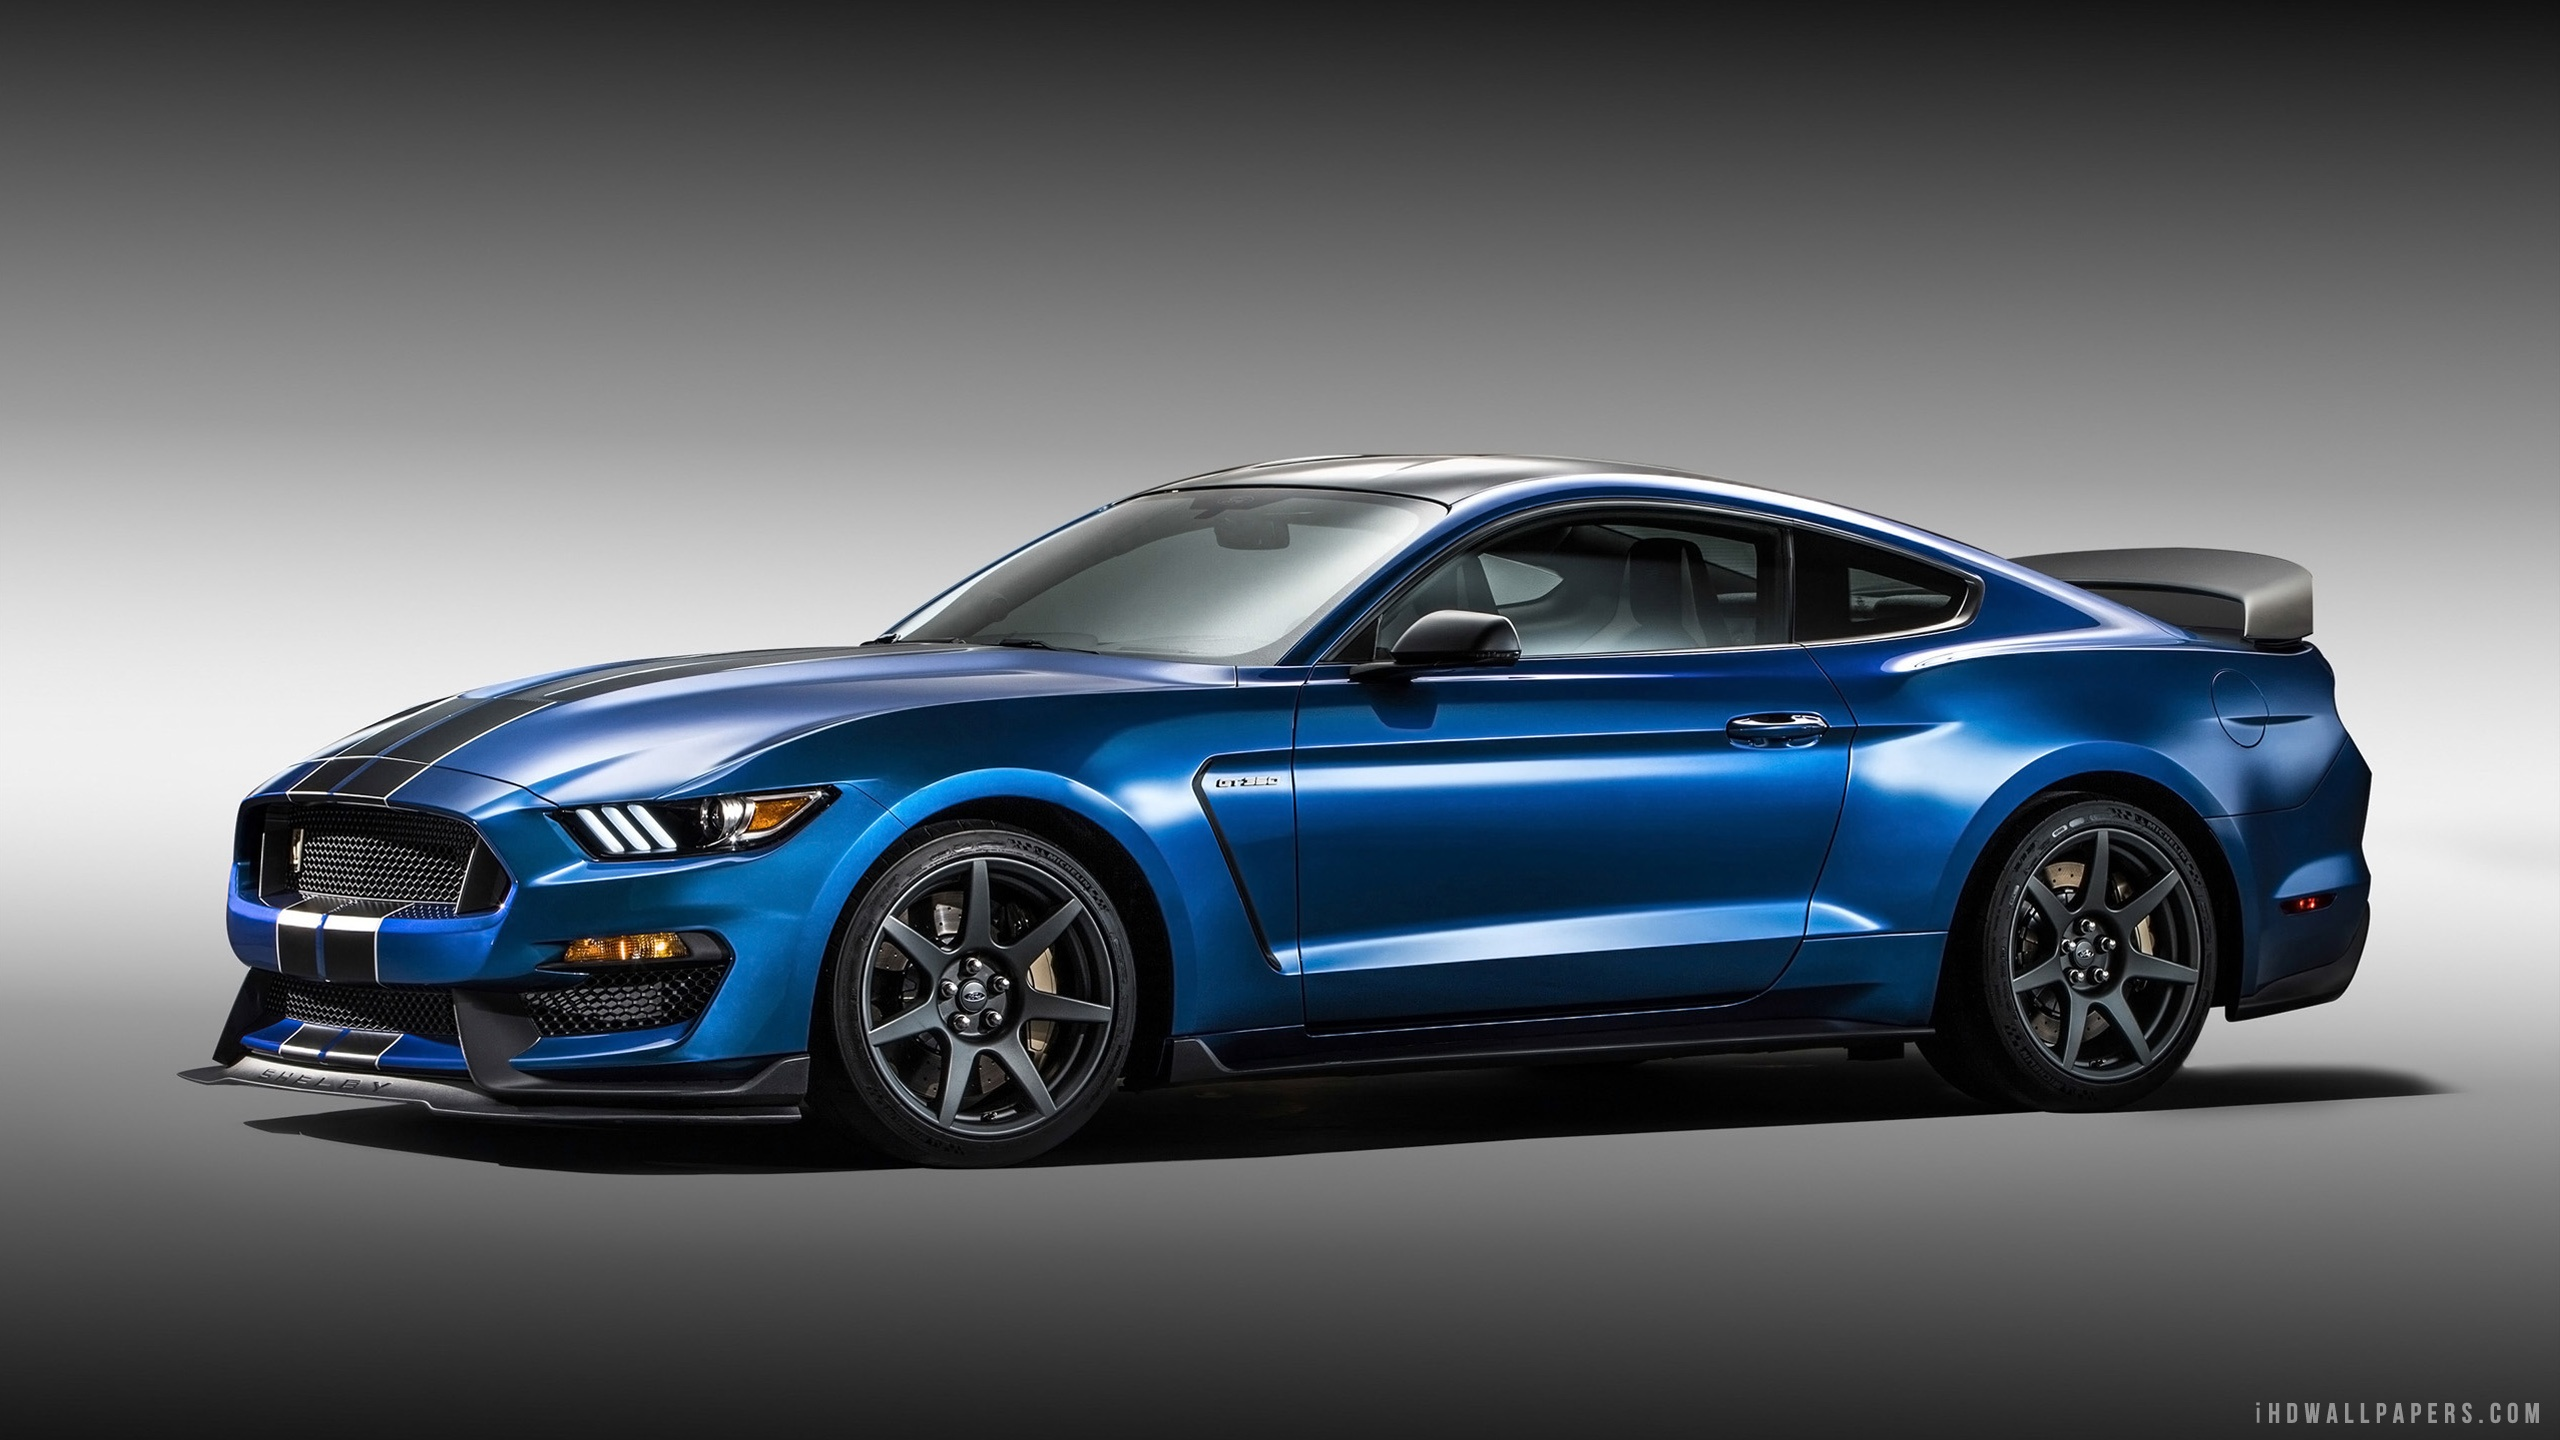 2016 Ford Mustang Shelby GT350 Wallpaper 2560x1440